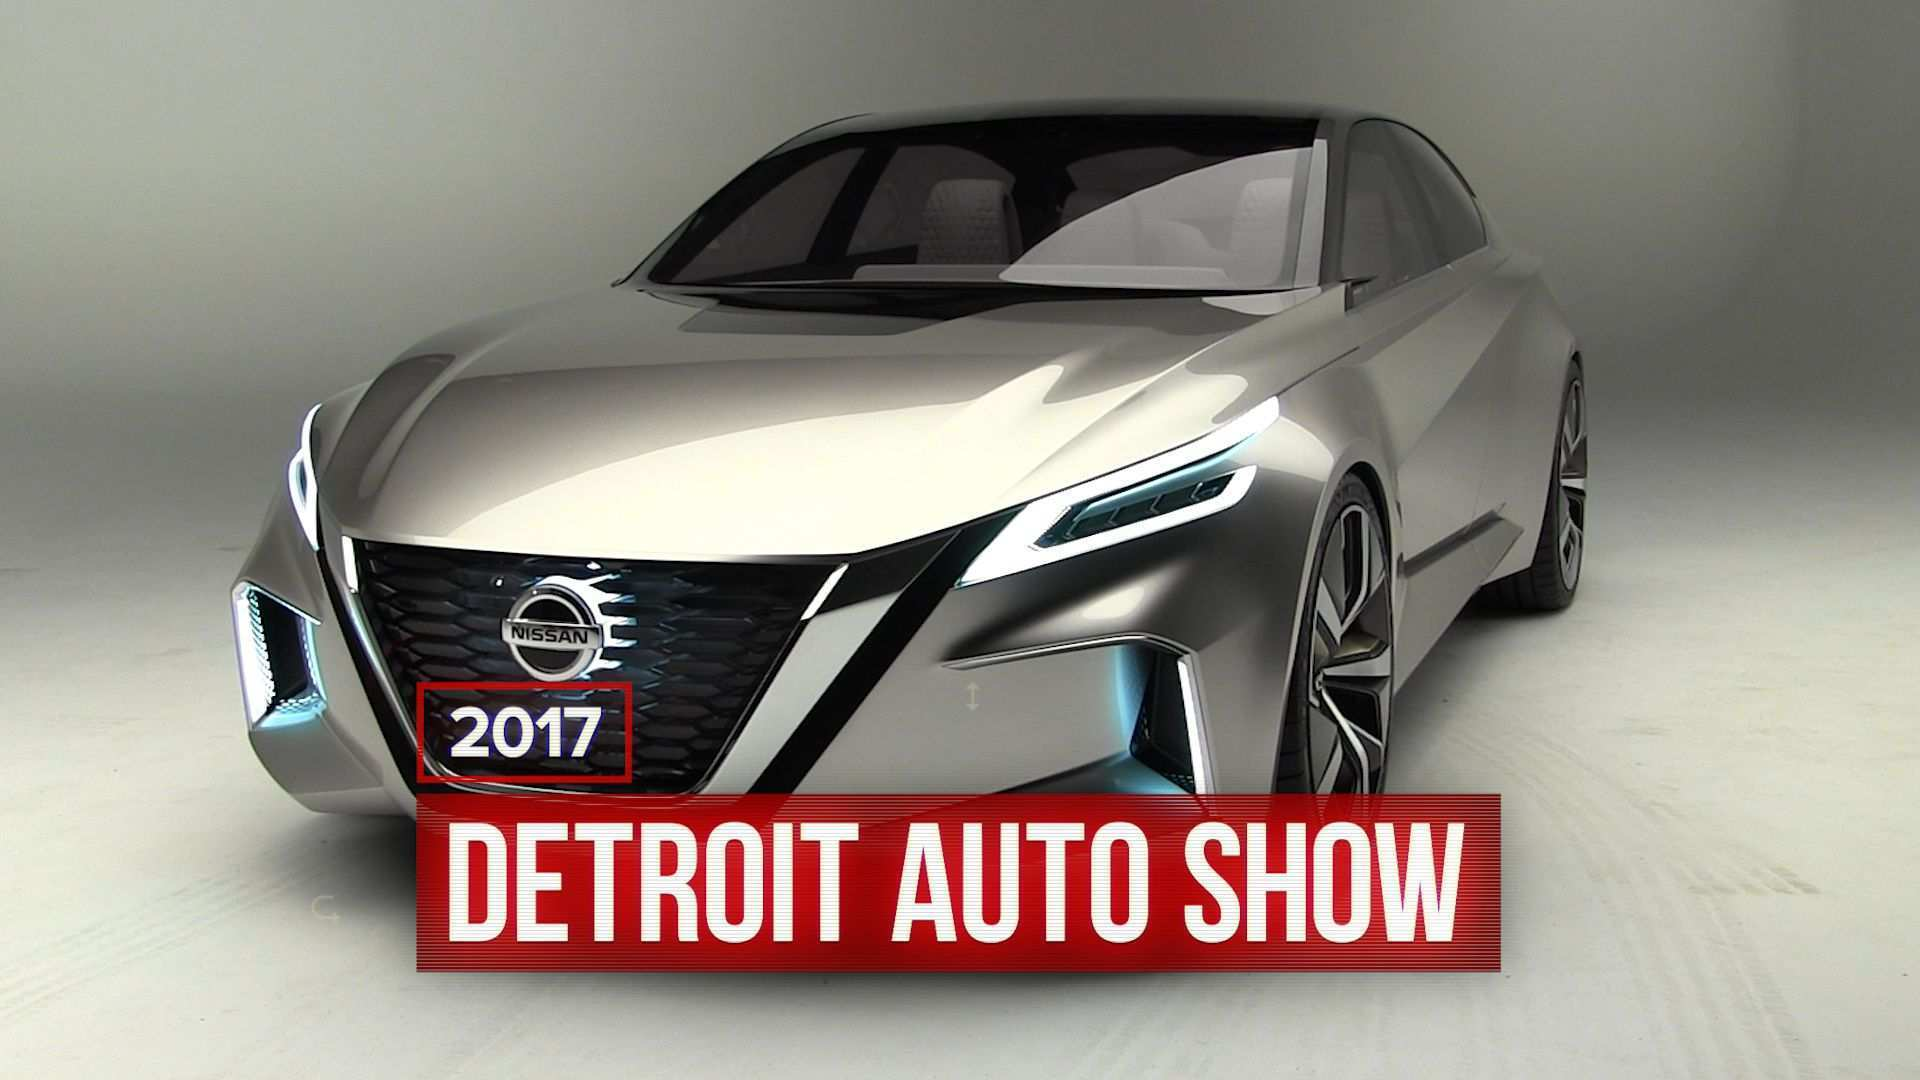 55 New 2019 Nissan Altima Concept Interior by 2019 Nissan Altima Concept